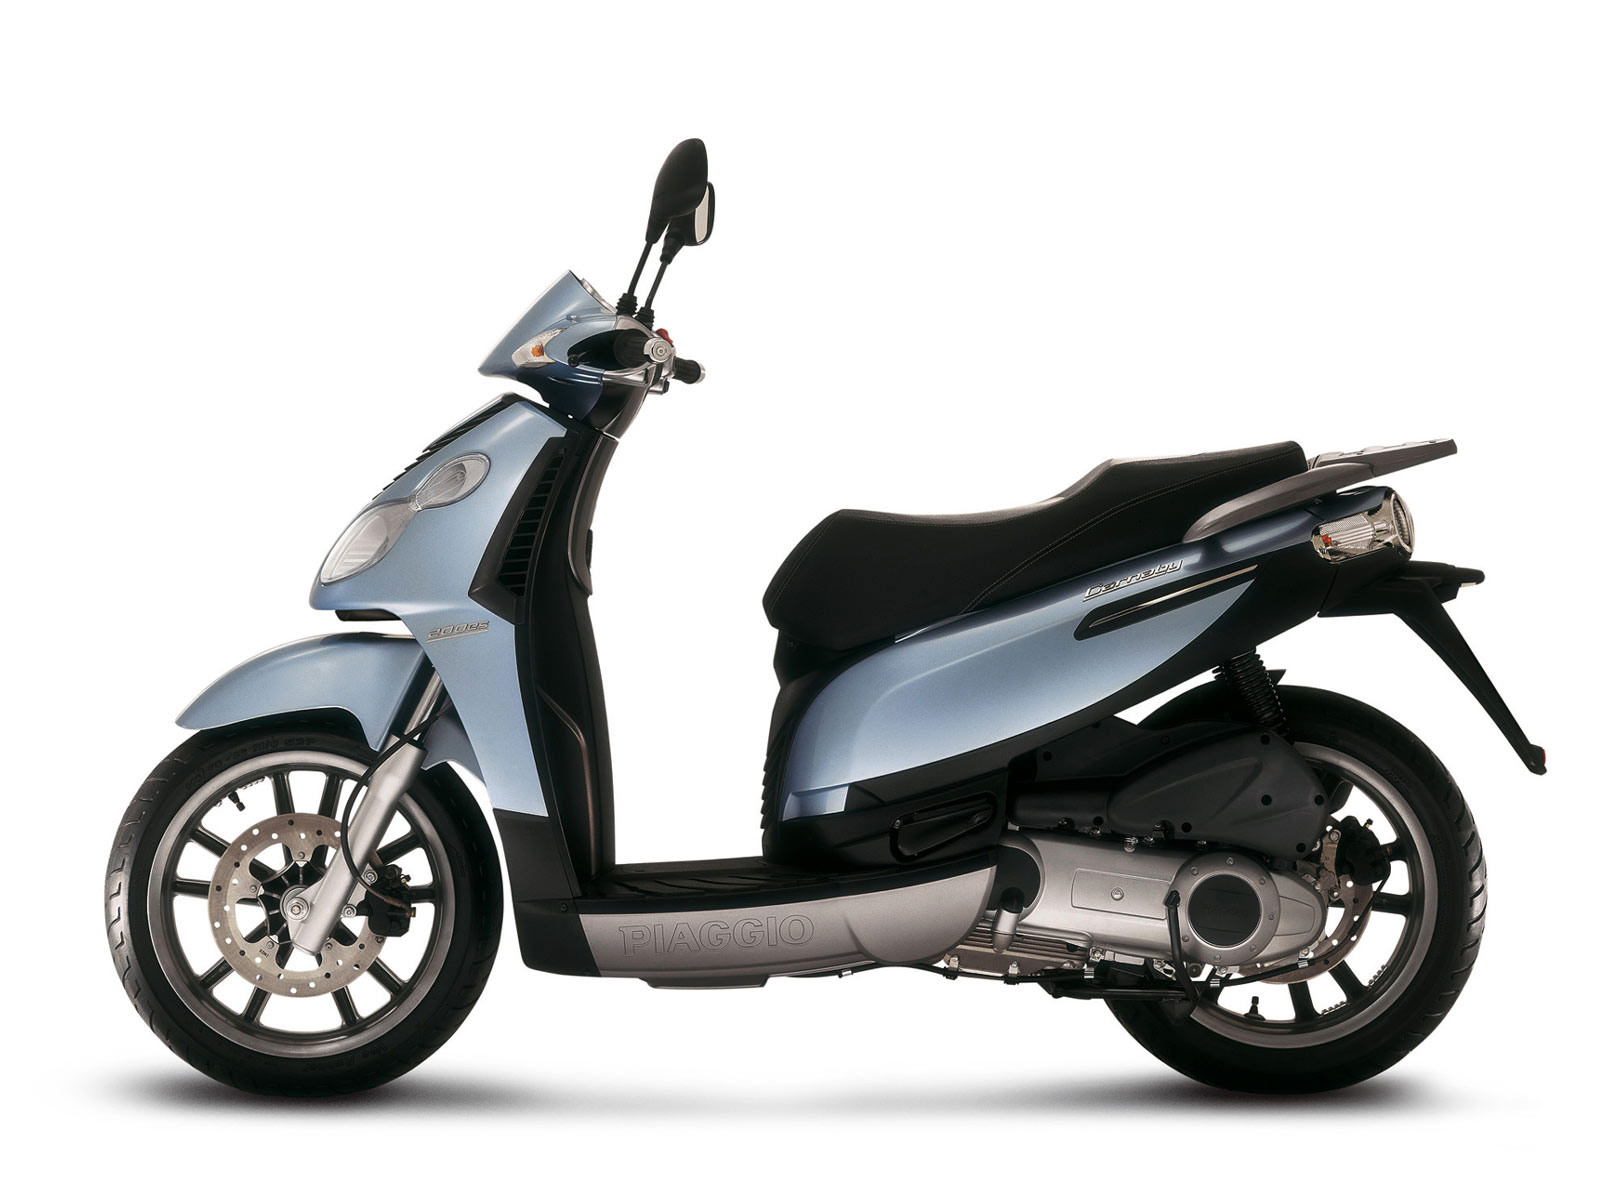 2007 piaggio liberty 125 4 stroke moto zombdrive com. Black Bedroom Furniture Sets. Home Design Ideas